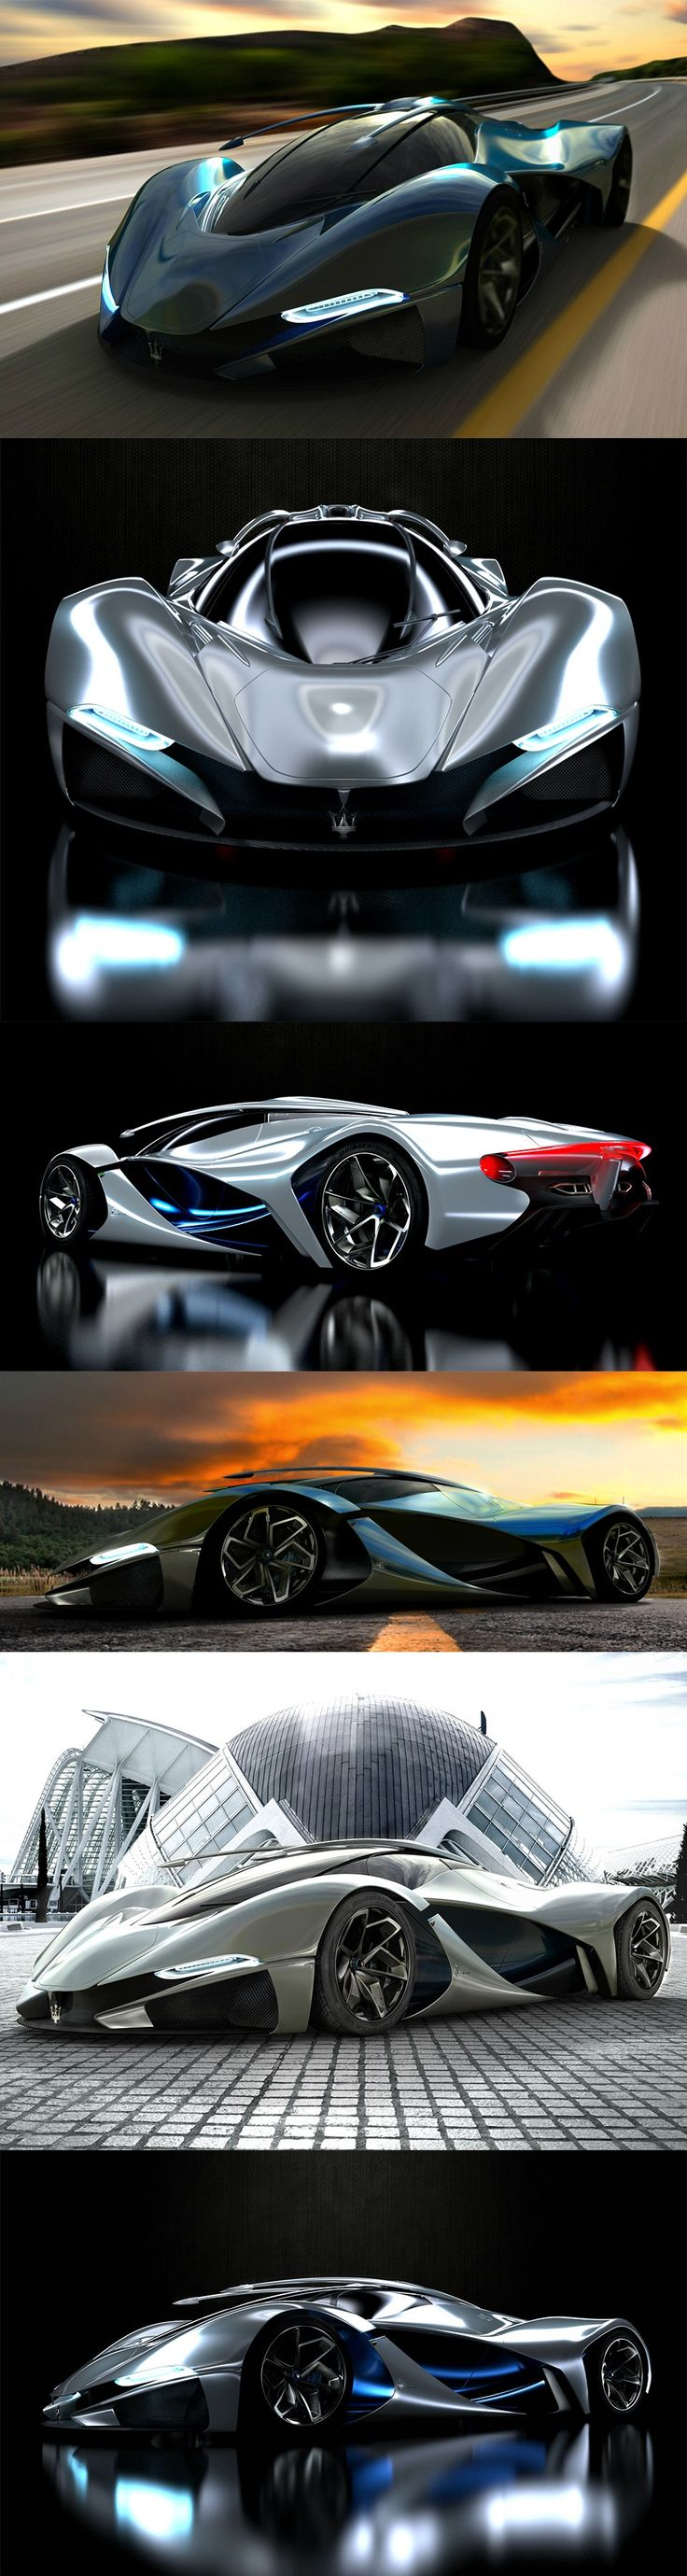 LaMaserati - Concept Car by Mark Hostler  #RePin by AT Social Media Marketing - Pinterest Marketing Specialists ATSocialMedia.co.uk